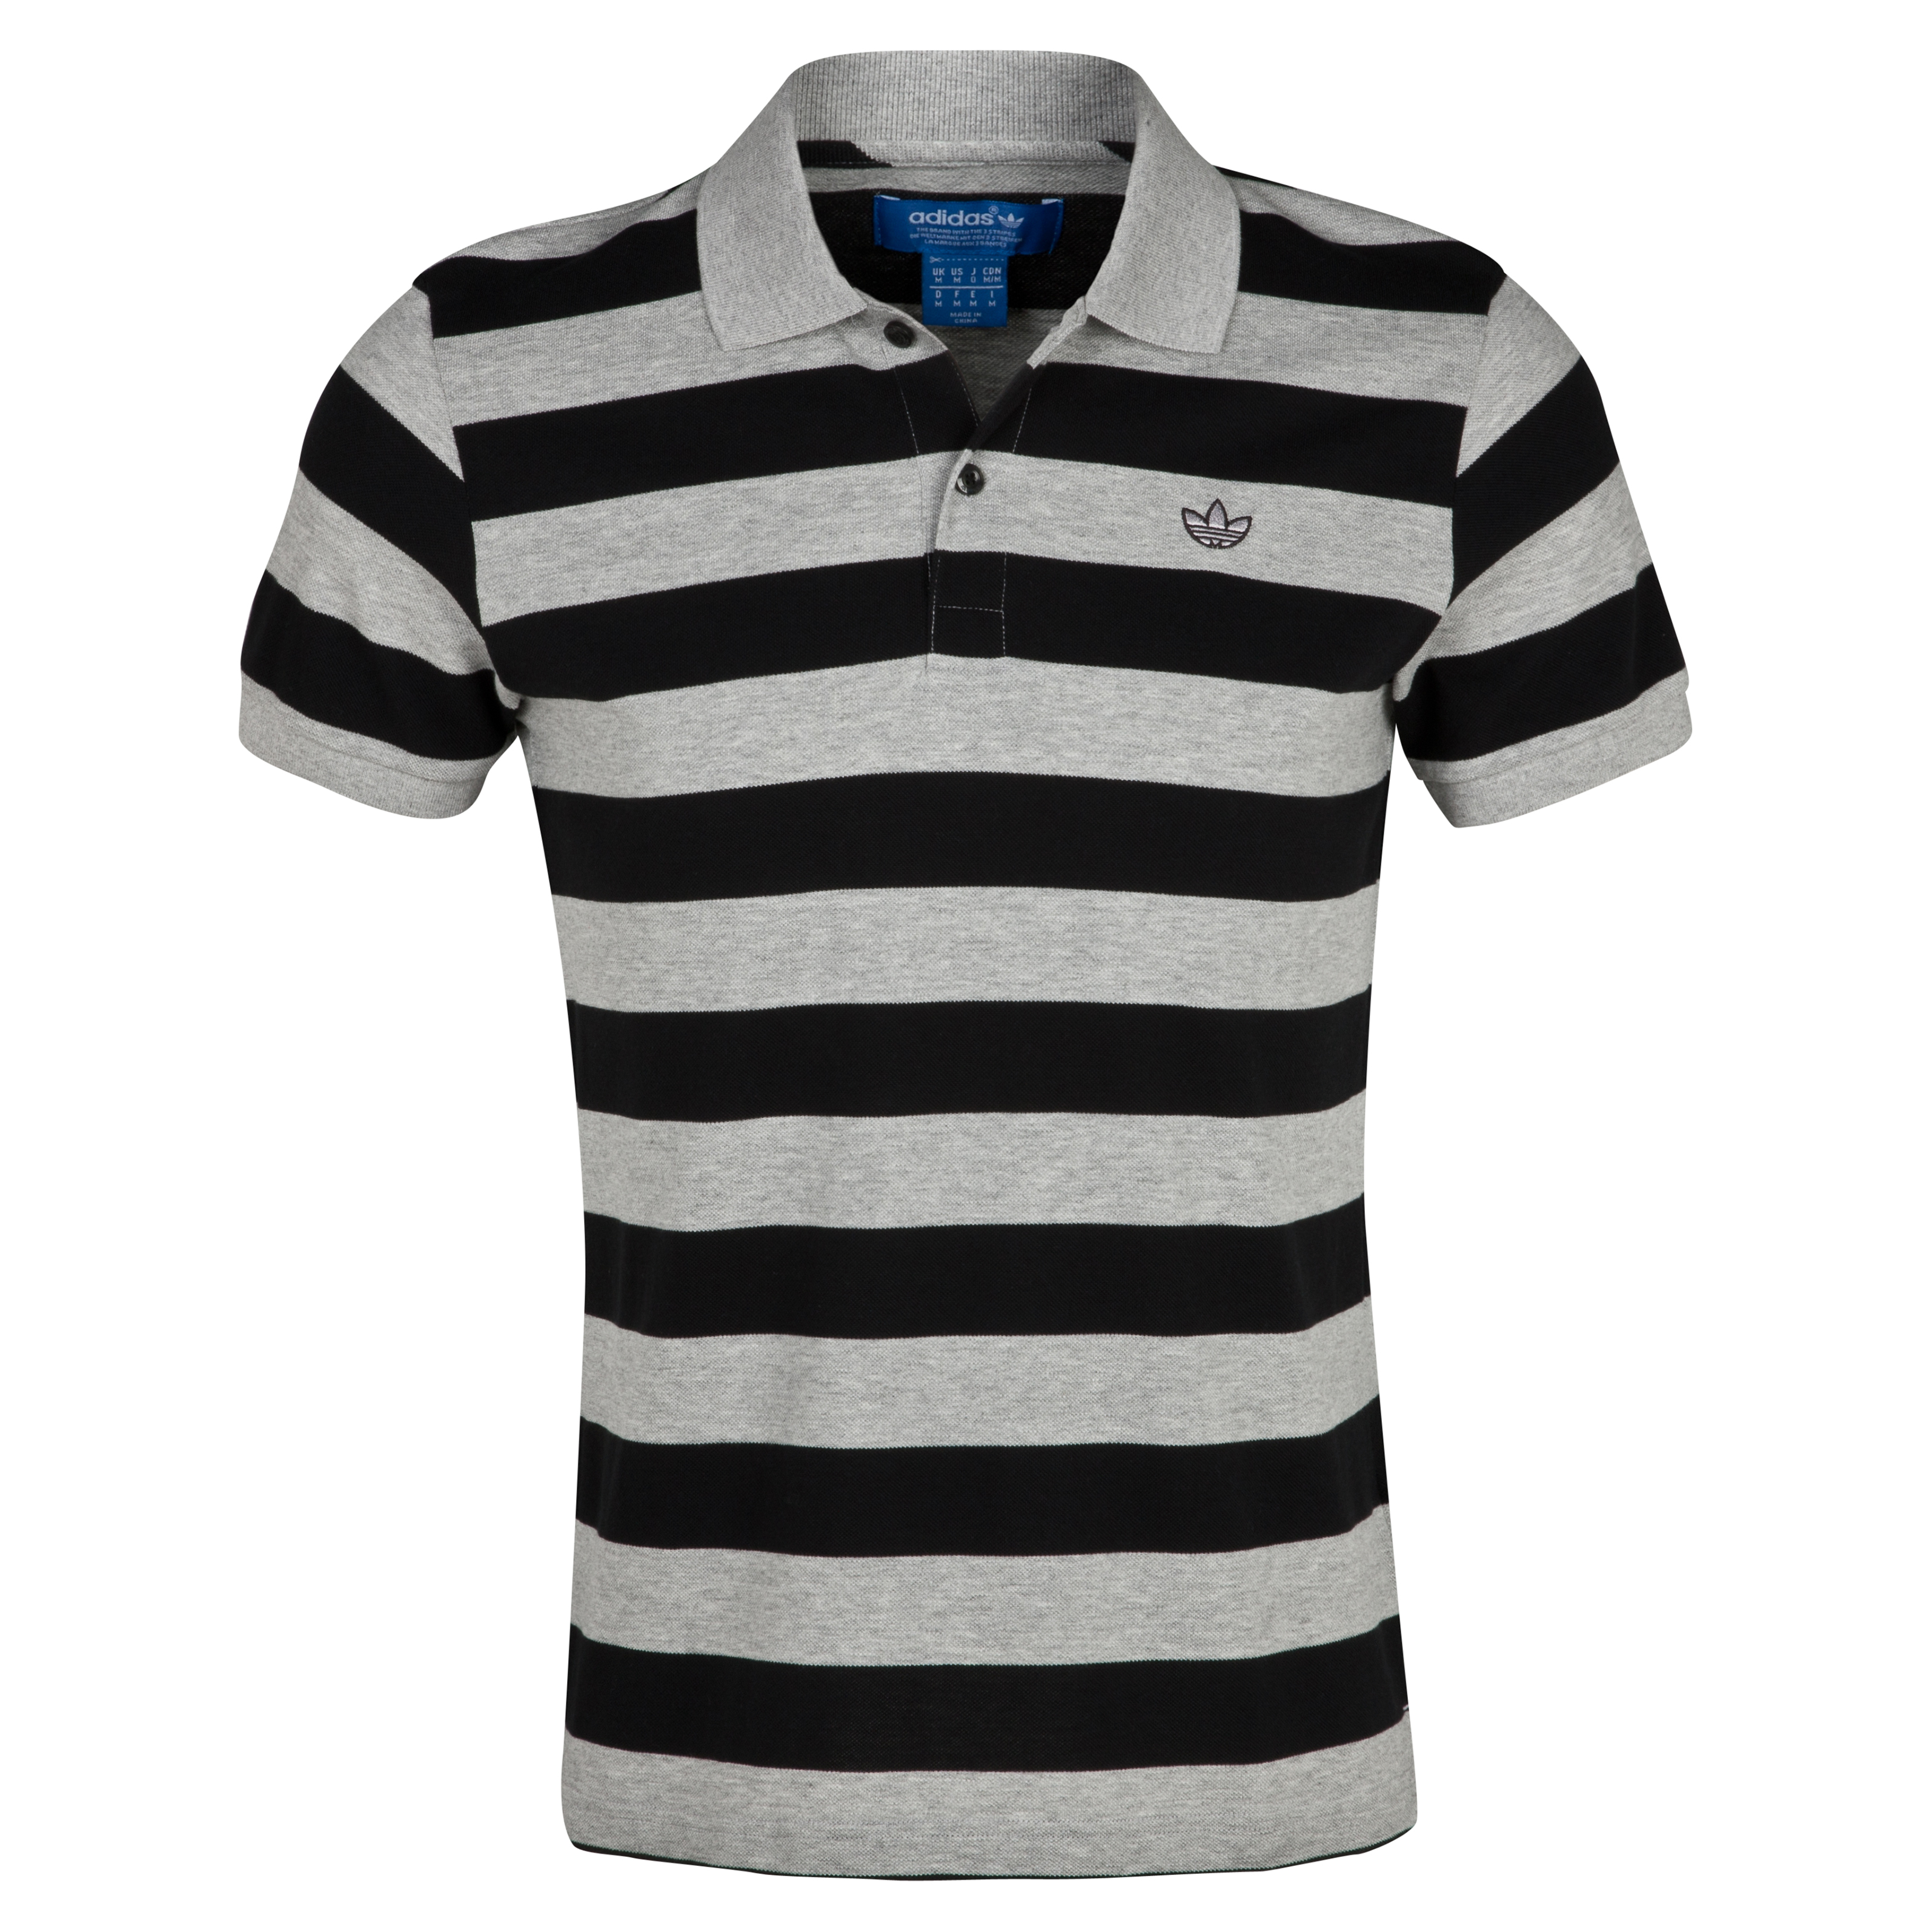 Originals Sailor Stripe Polo - Medium Grey Heather/Black